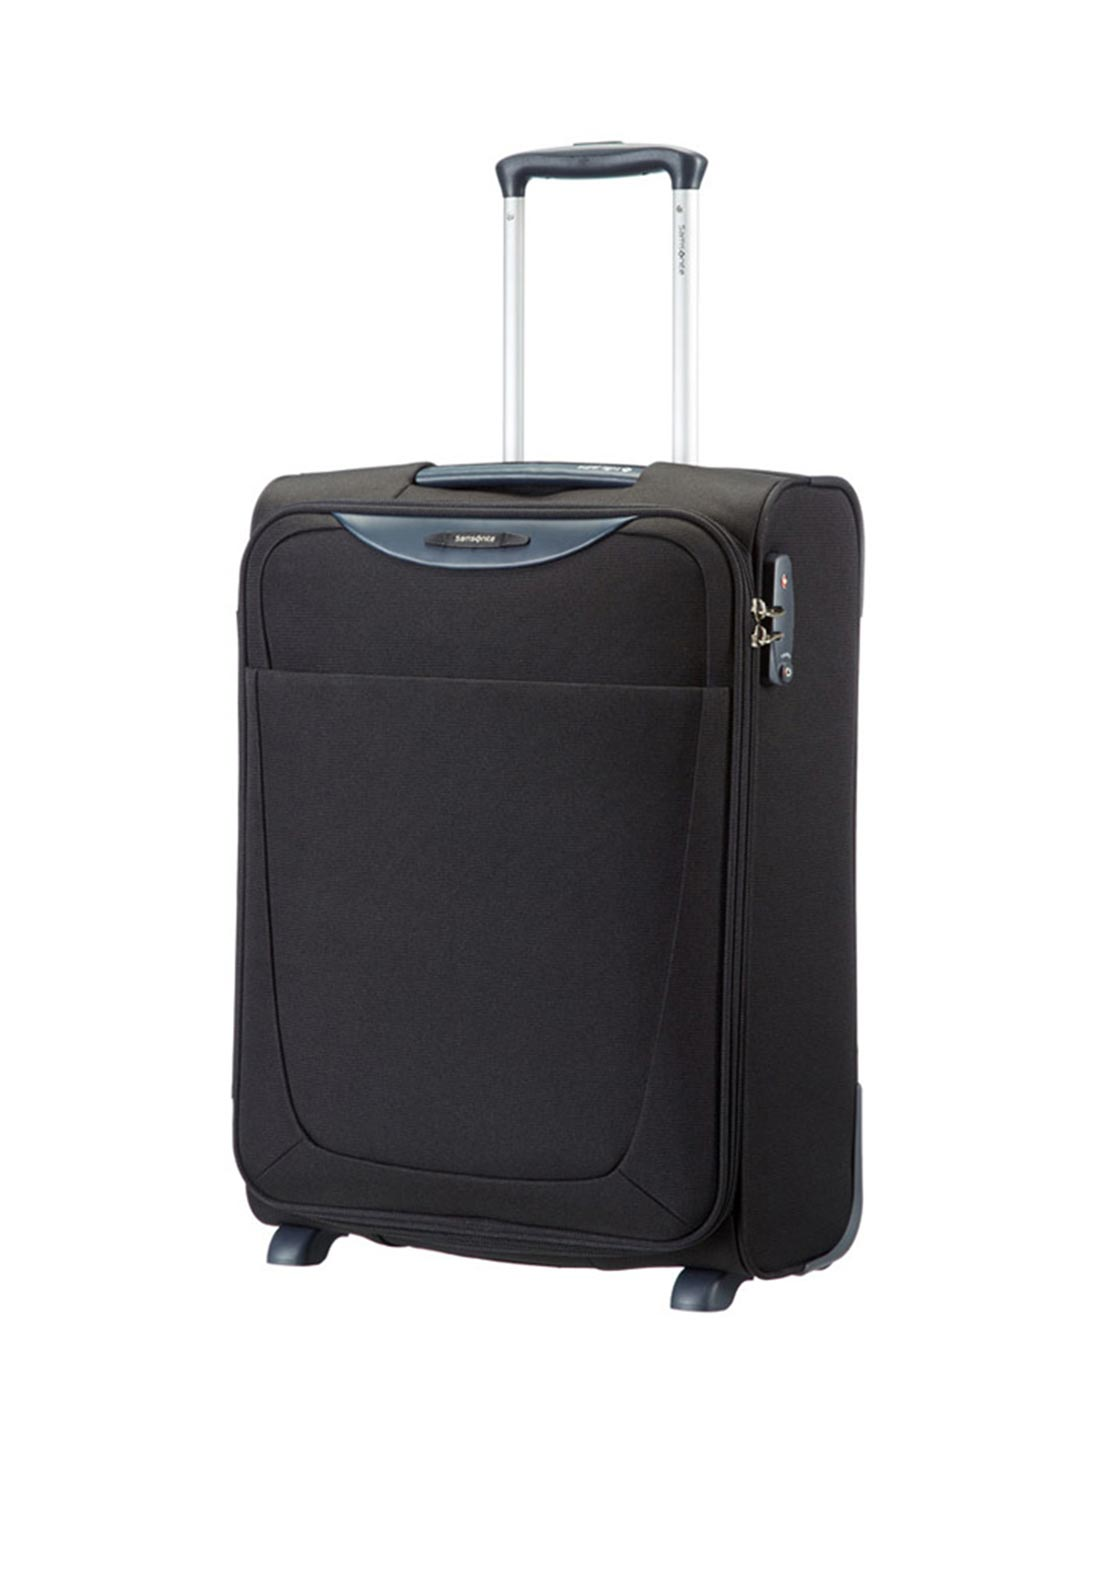 Samsonite Base Hits Upright Cabin Size Suitcase 55cm, Black